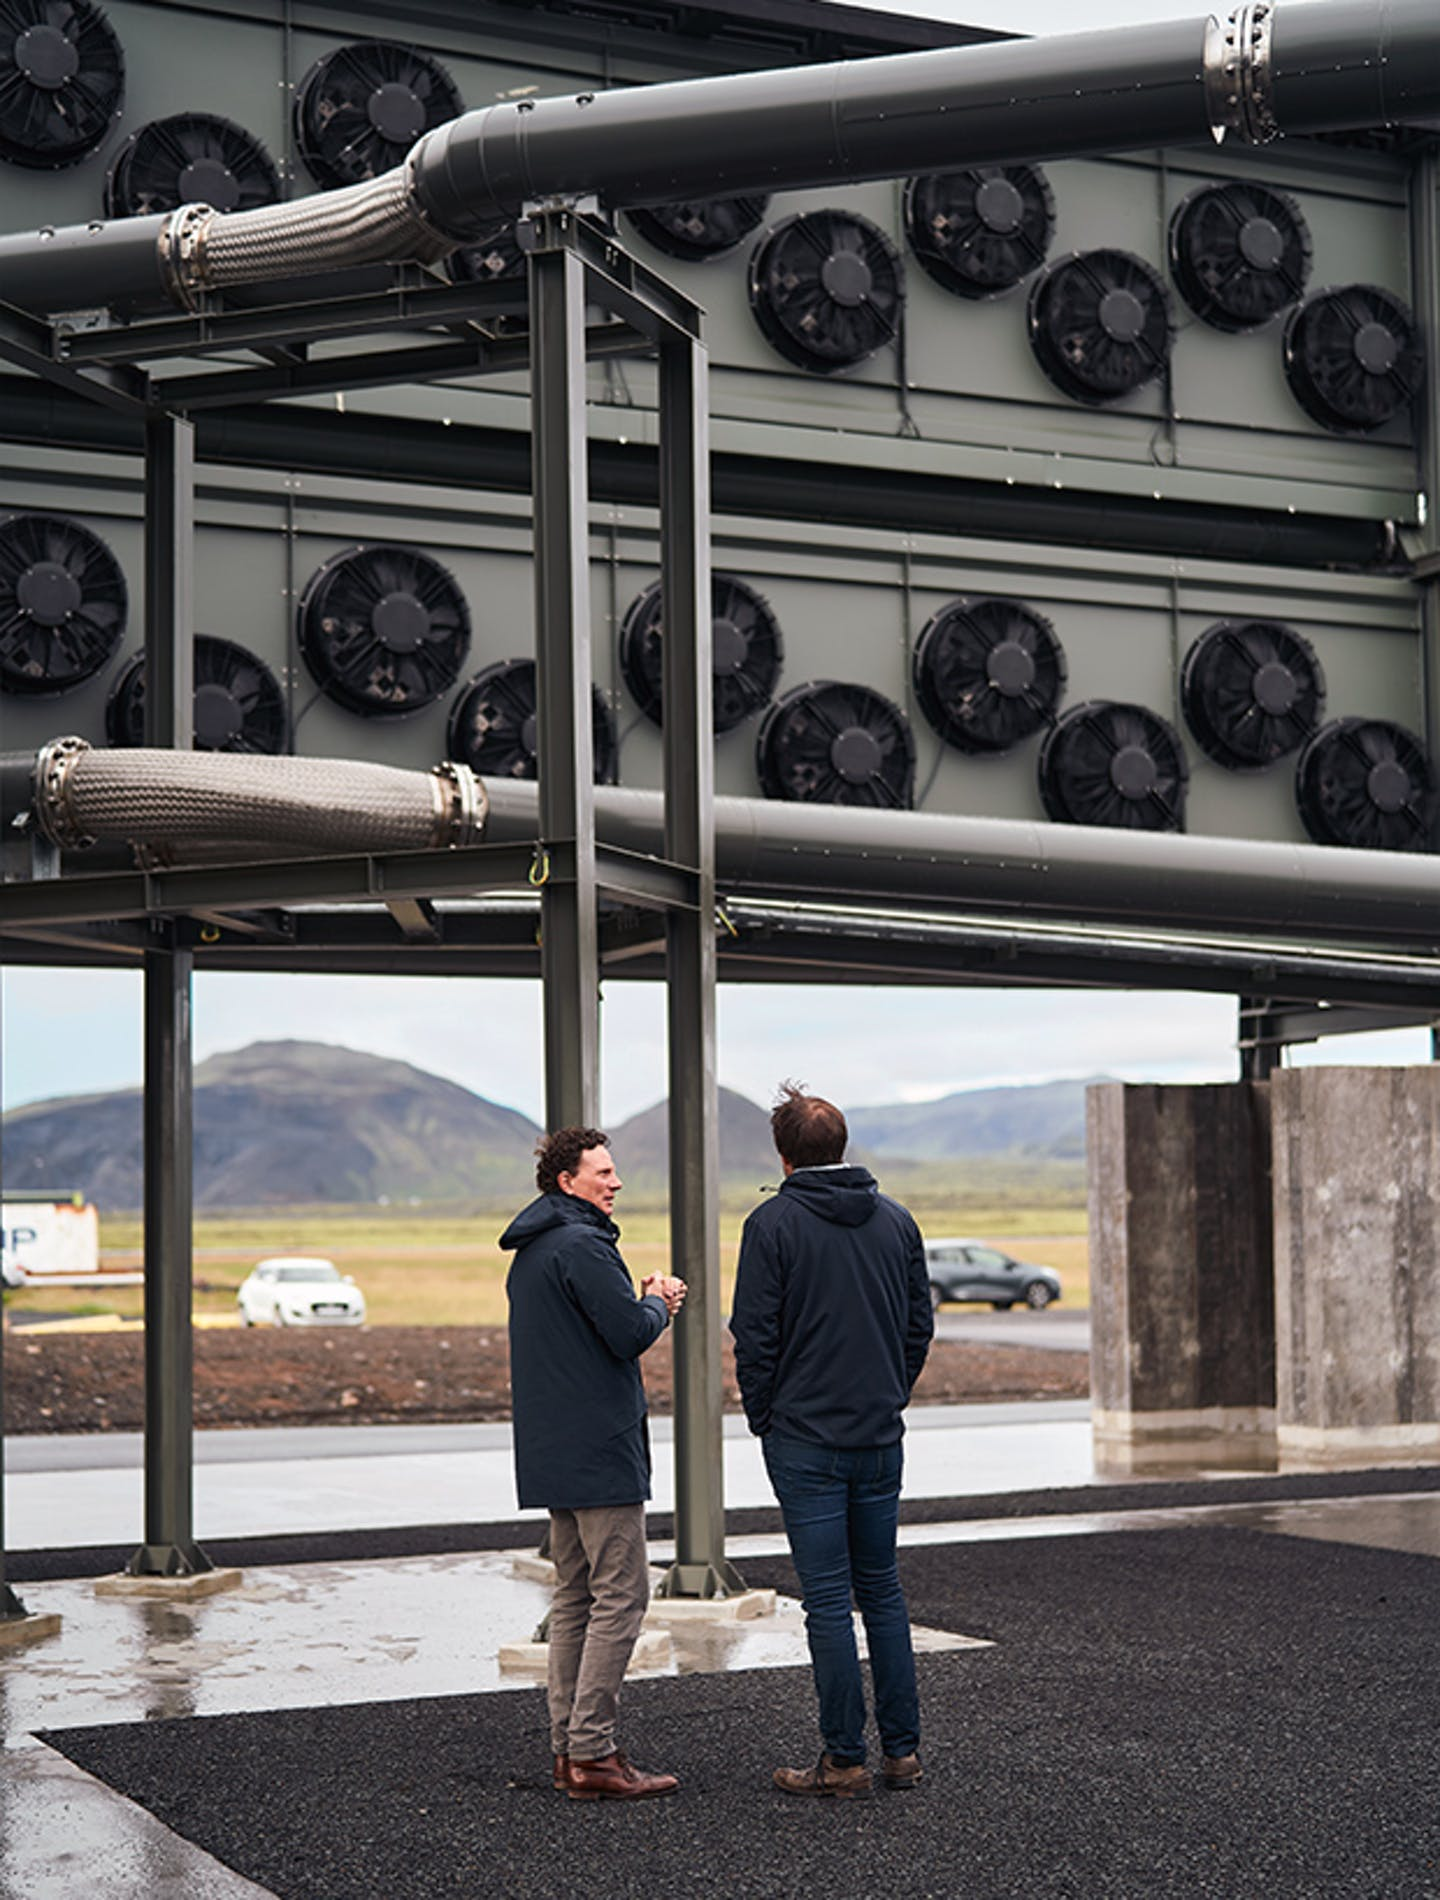 Christoph Gebald and Jan Wurzbacher in front of Climeworks' Orca plant